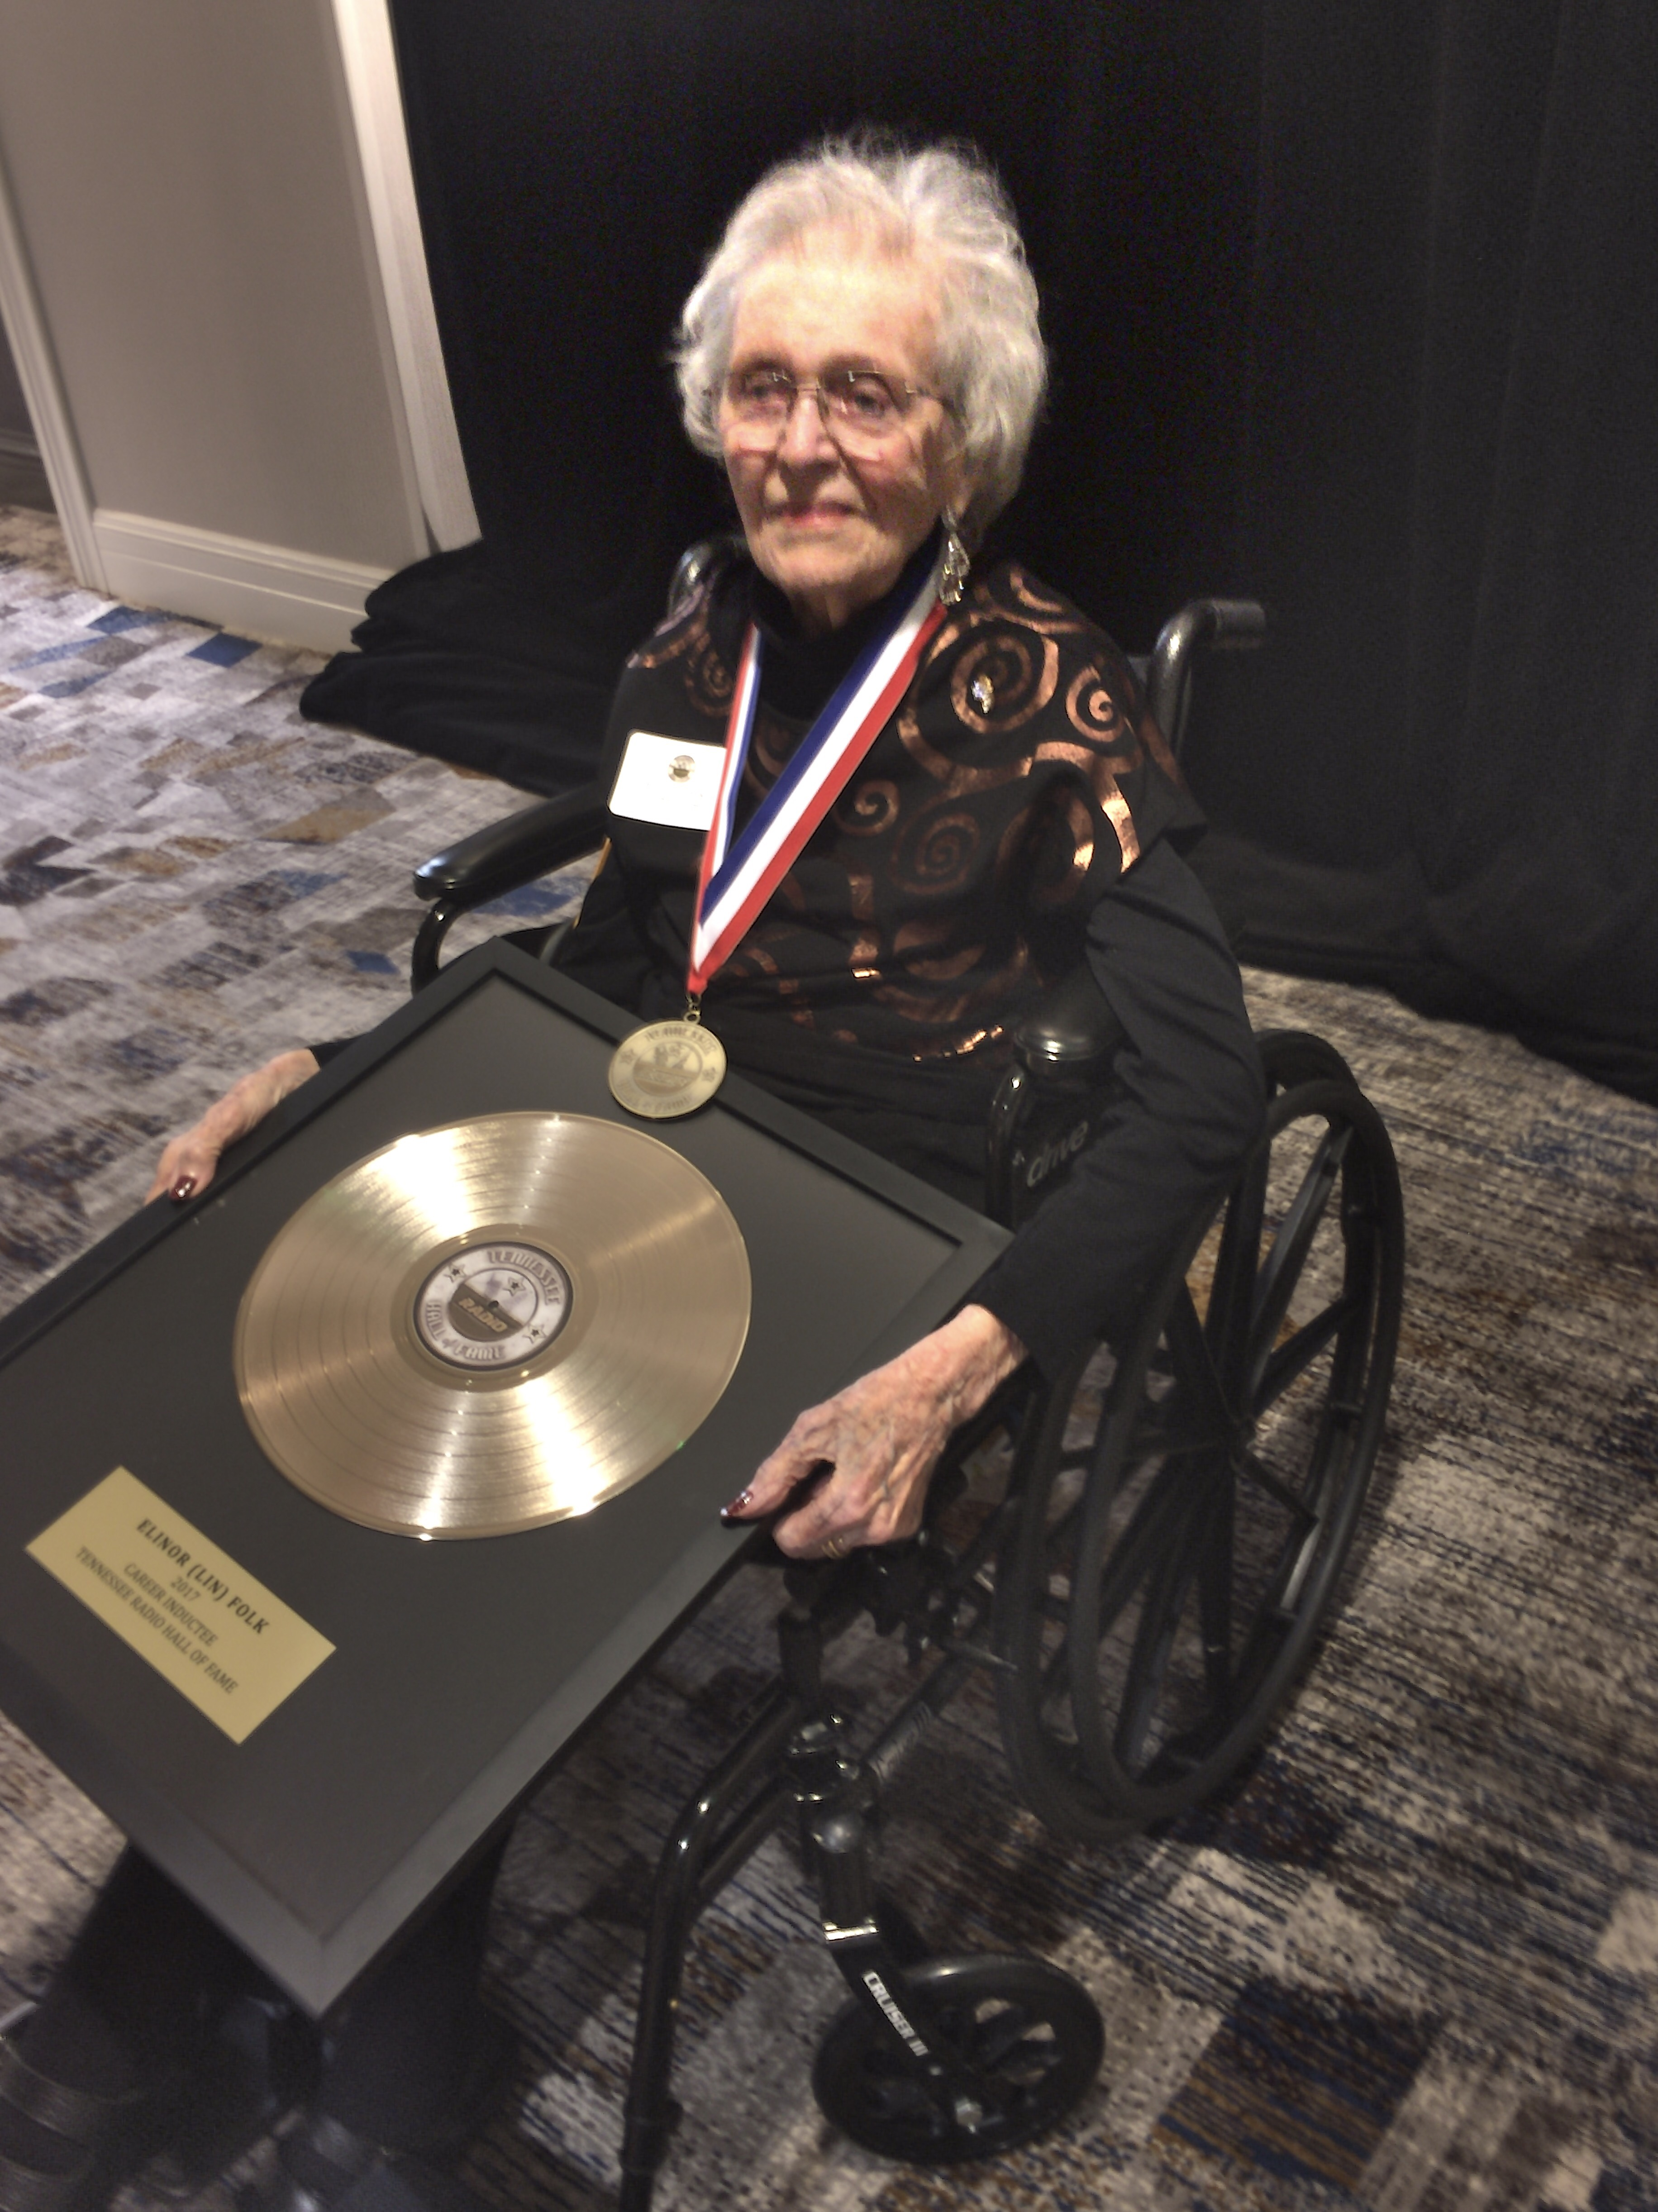 Pioneer broadcaster Lin Folk displayed her TN Radio Hall of Fame gold record and plaque after her induction.